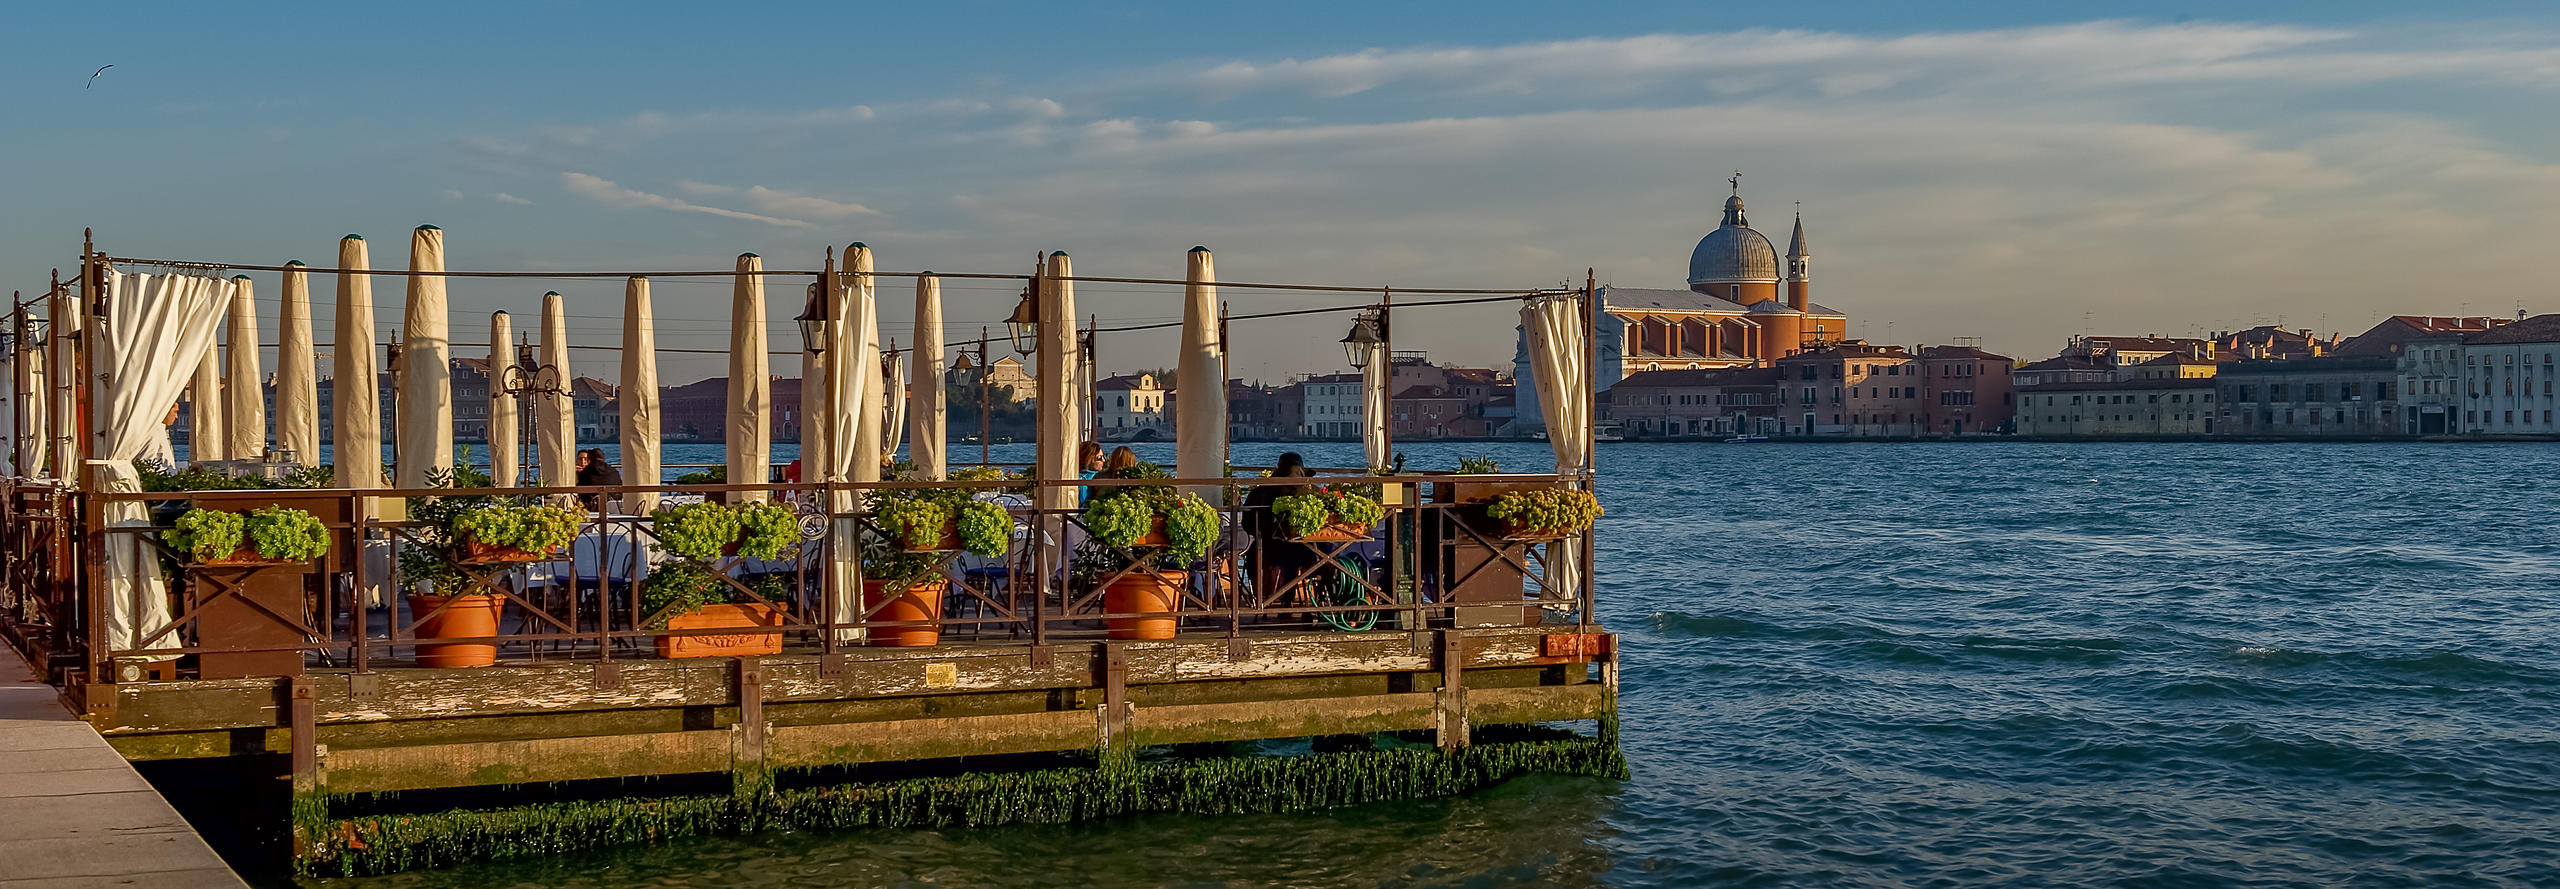 Restaurant on the Grand Canal, Venice